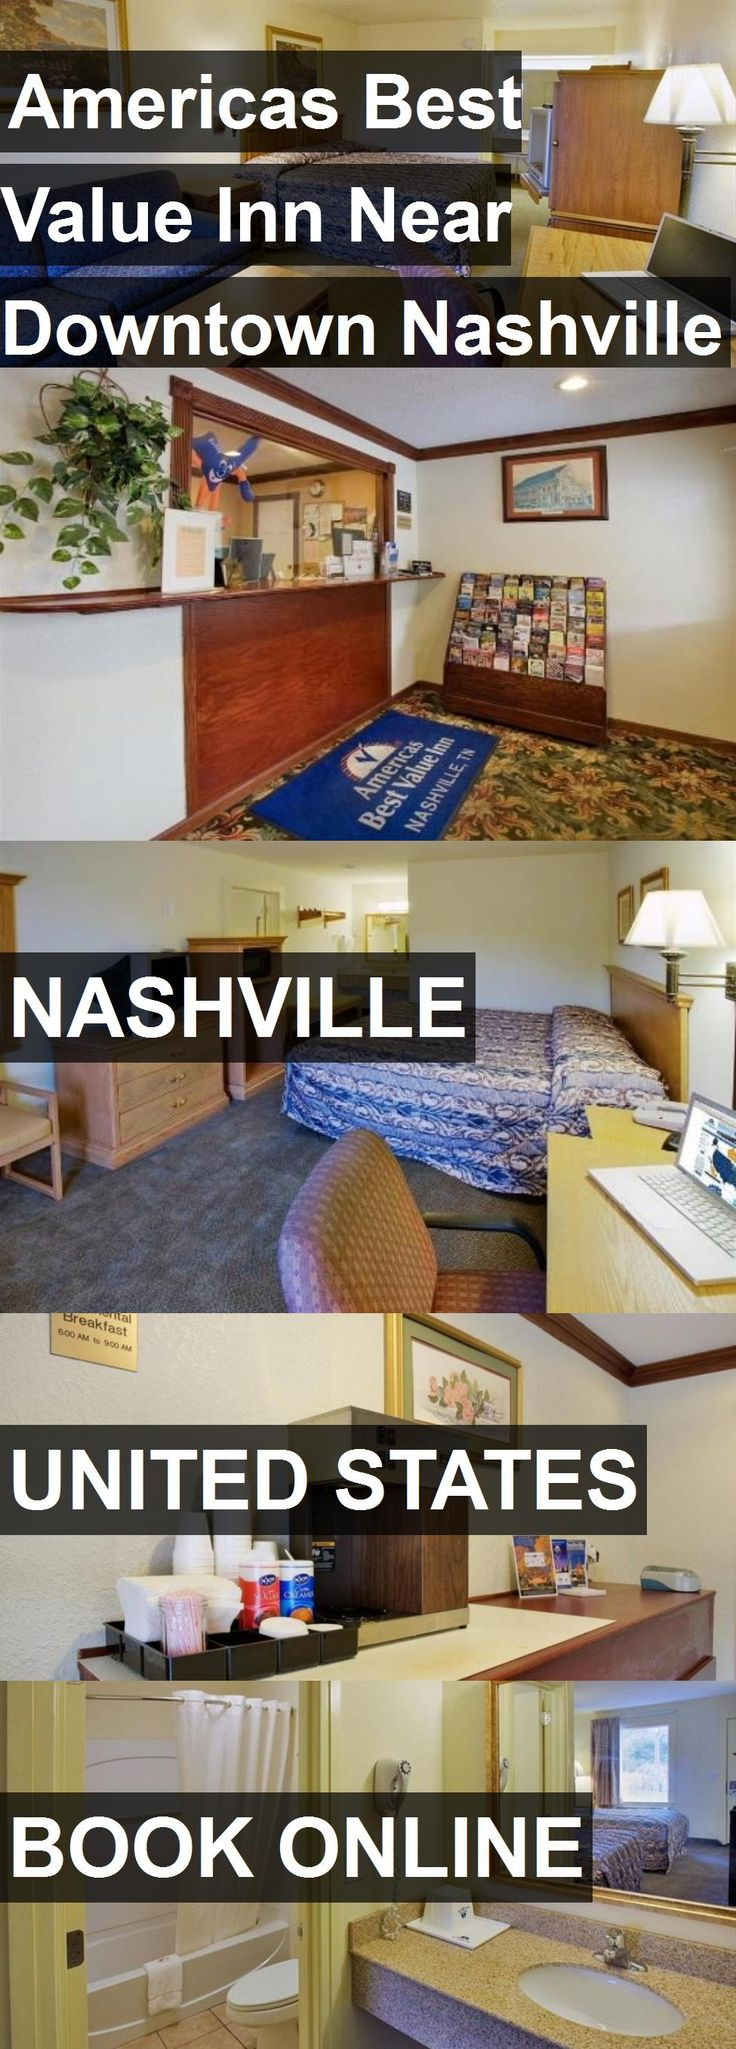 Hotel Americas Best Value Inn Near Downtown Nashville in Nashville, United States. For more information, photos, reviews and best prices please follow the link. #UnitedStates #Nashville #travel #vacation #hotel